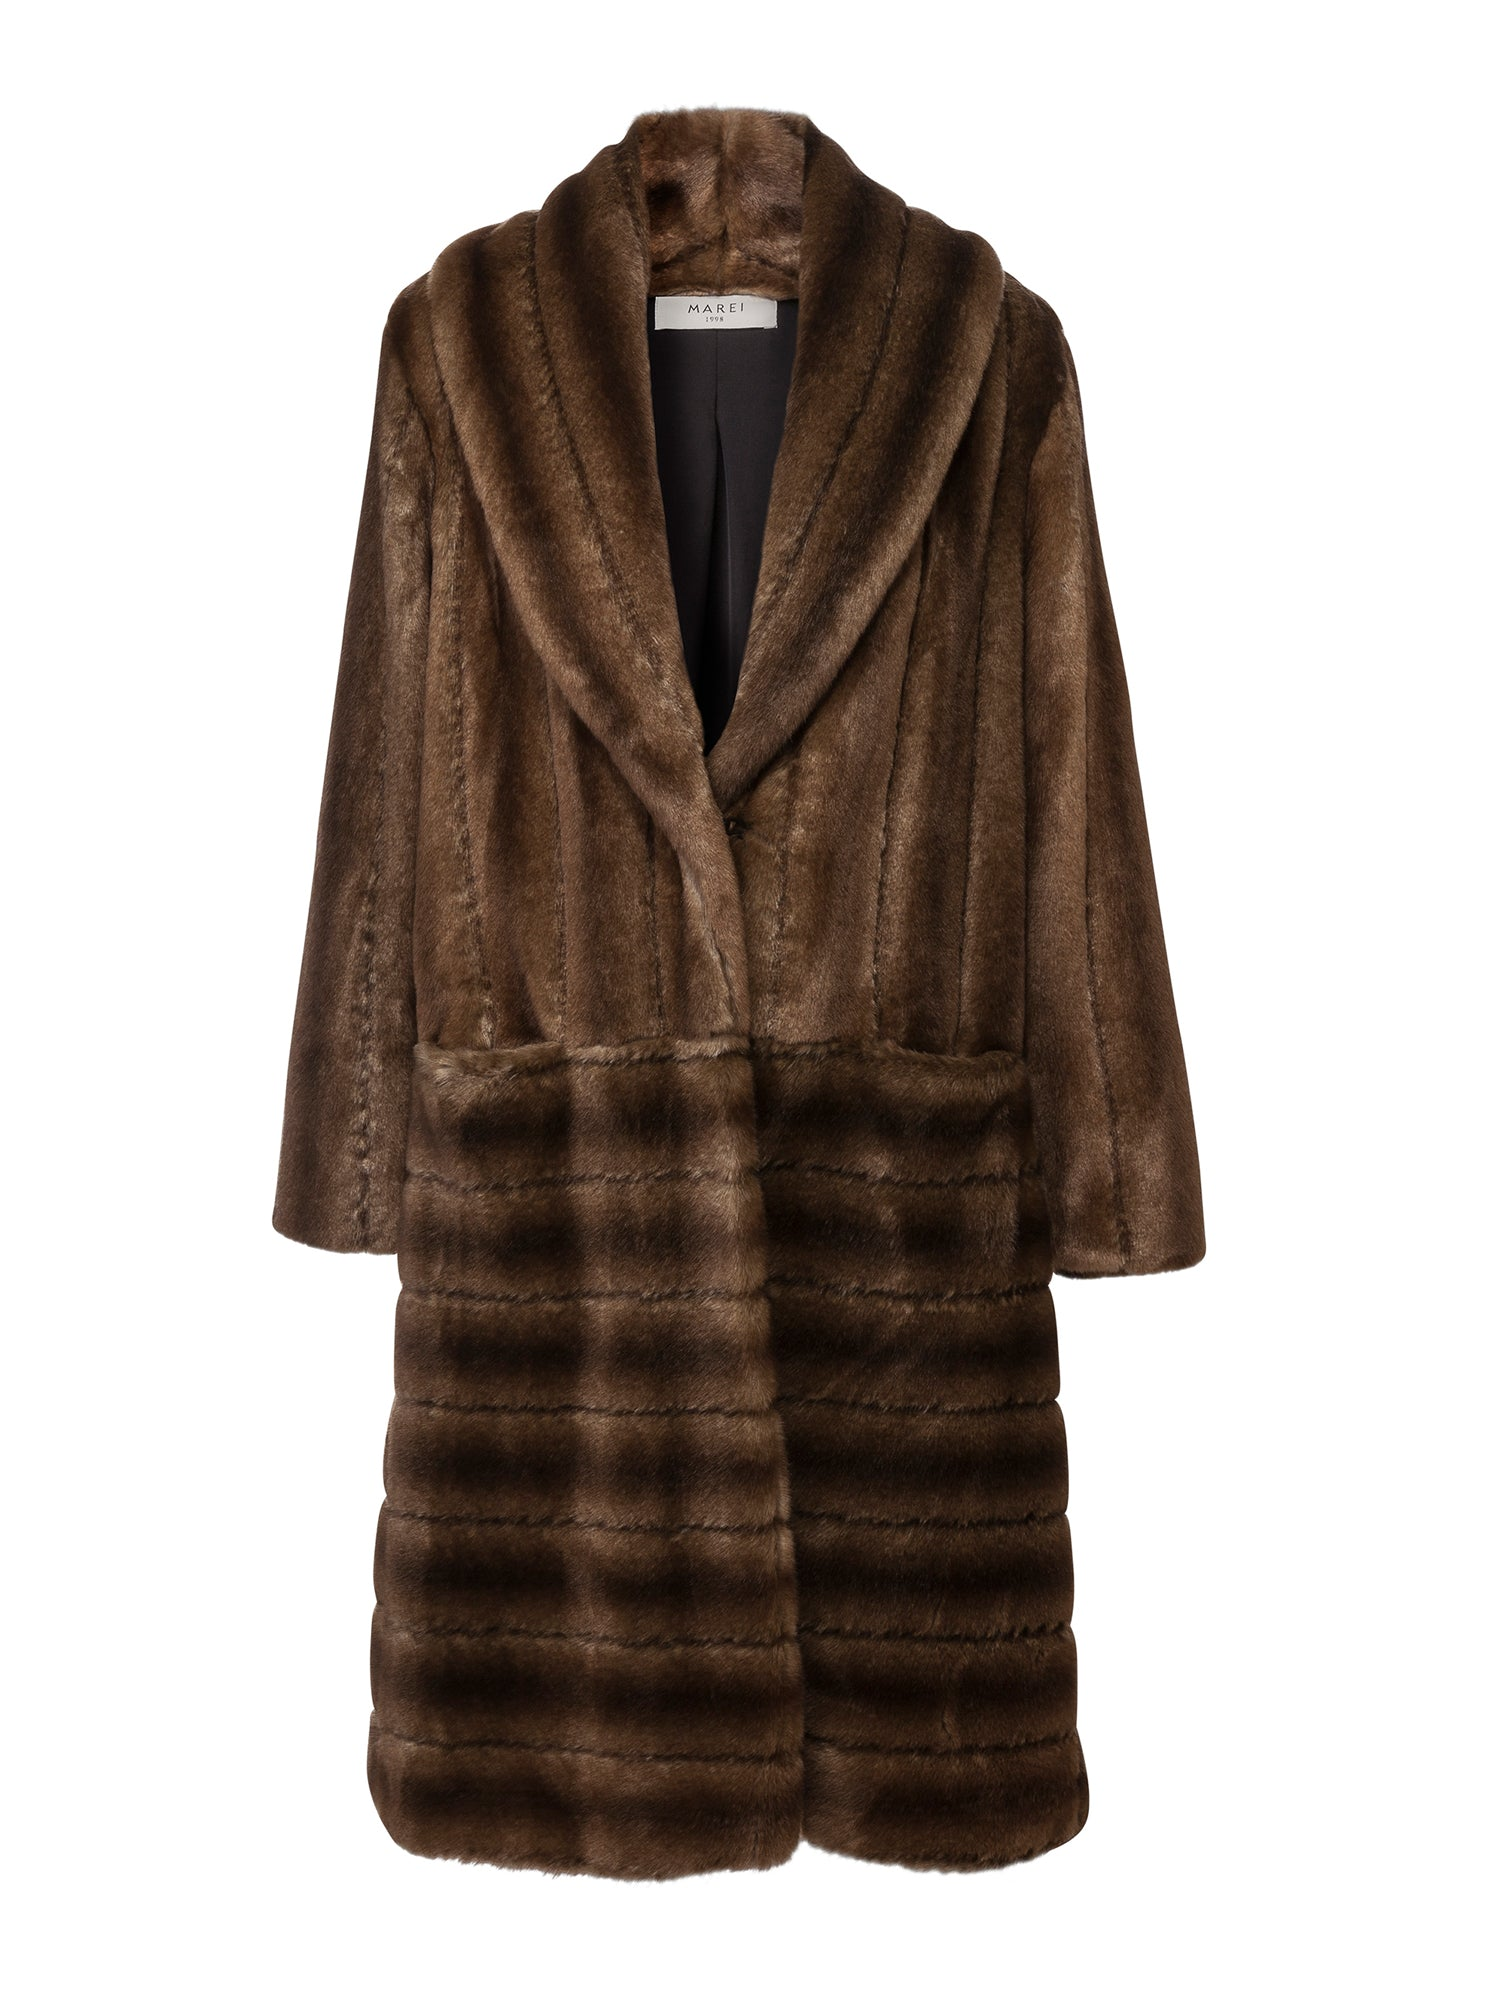 A Packshot Of Marei1998's Legendary Deutzia Long Faux Fur Coat In Classic Brown Color. Made From Plush Faux Fur, Which Feels So Warm And Comfortable. The Full Length Silhouette Creates A Contemporary Vintage Look. Cut In A Slight A-Line Shape And Fully Lined, It Is Ideal For Smooth Layering. Timeless Winter Investment. Front View.